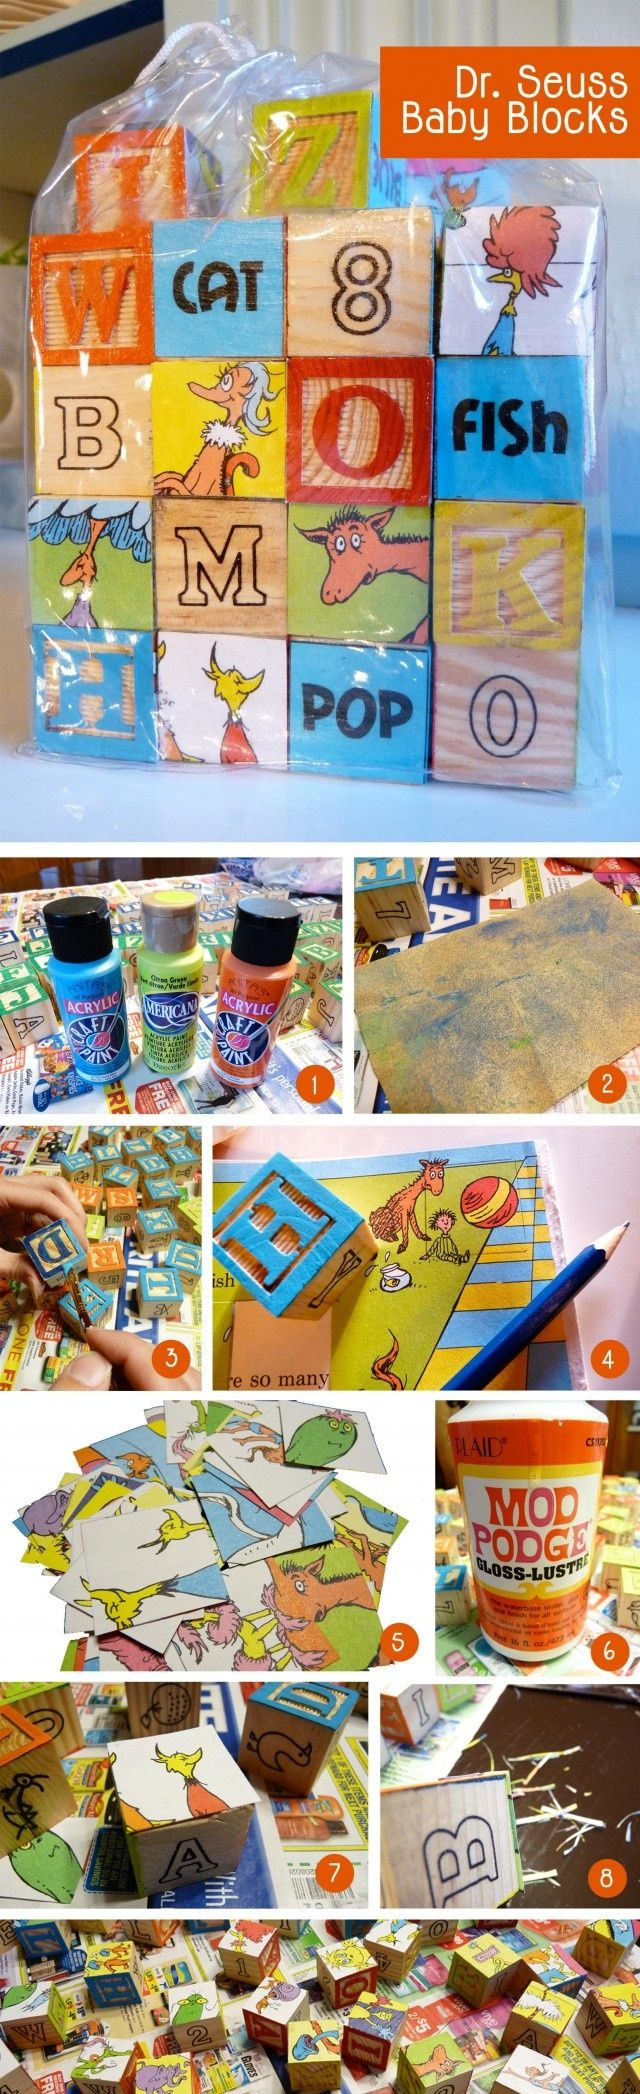 DIY Dr. Seuss Blocks (this is from a cute baby shower held at a school library for a teacher).